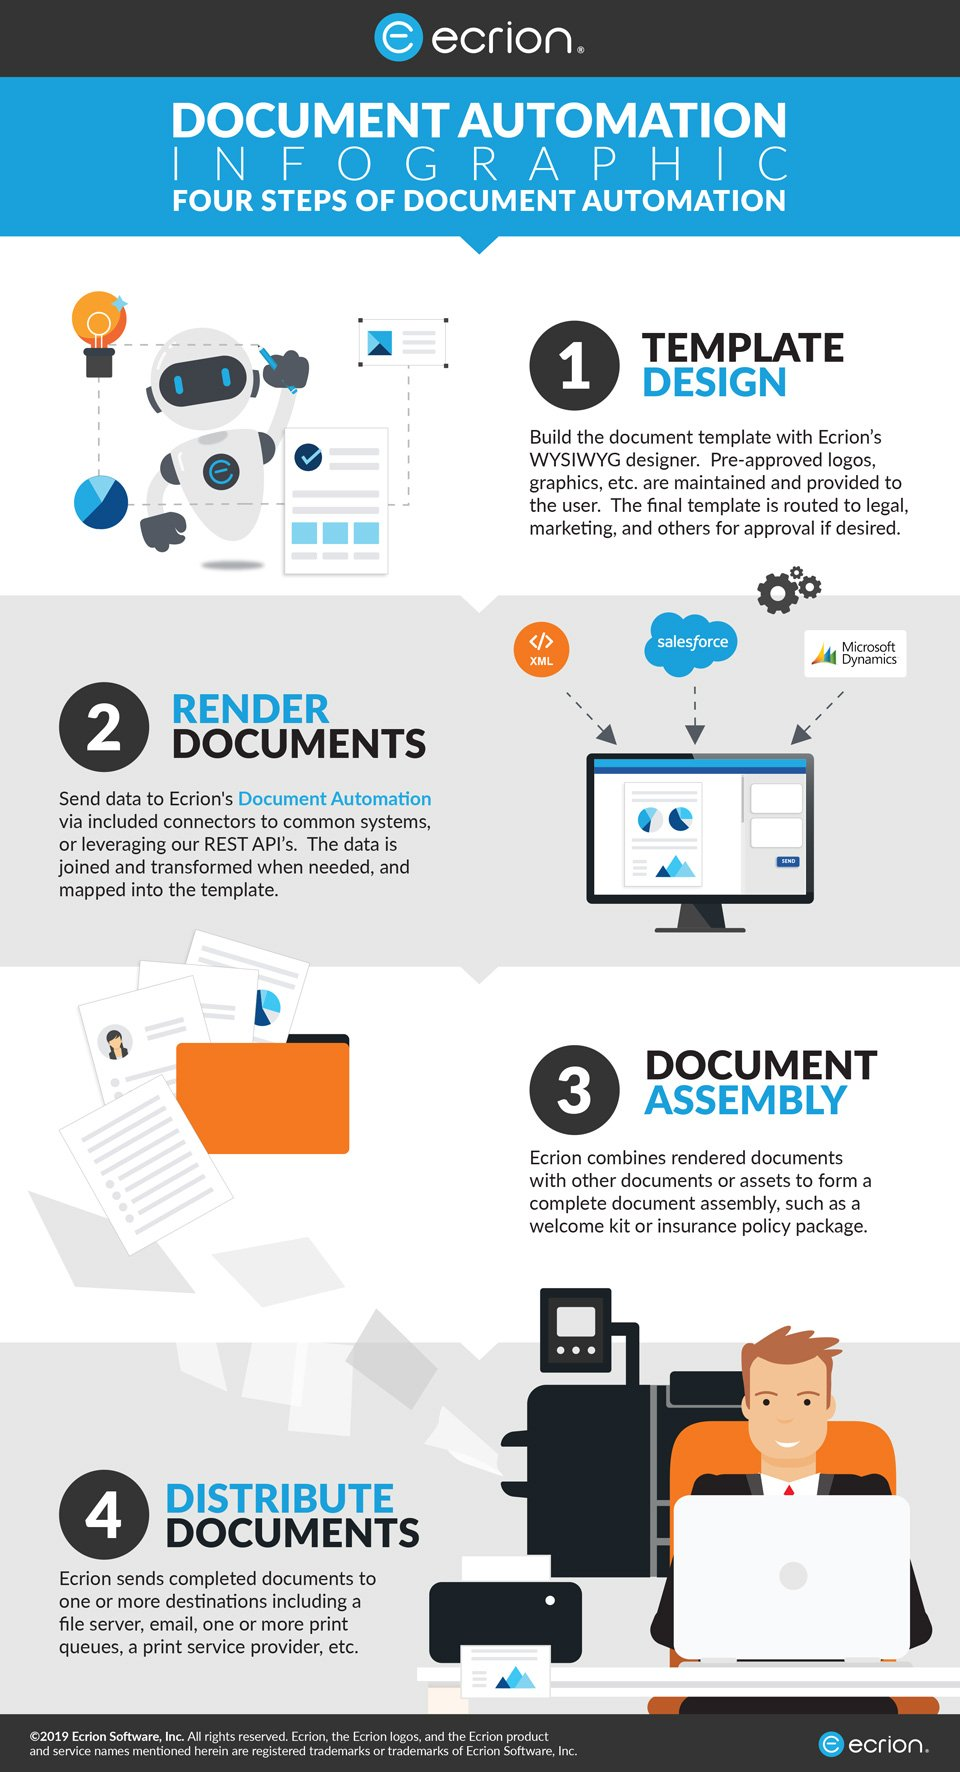 The Four Steps of Document Automation Infographic